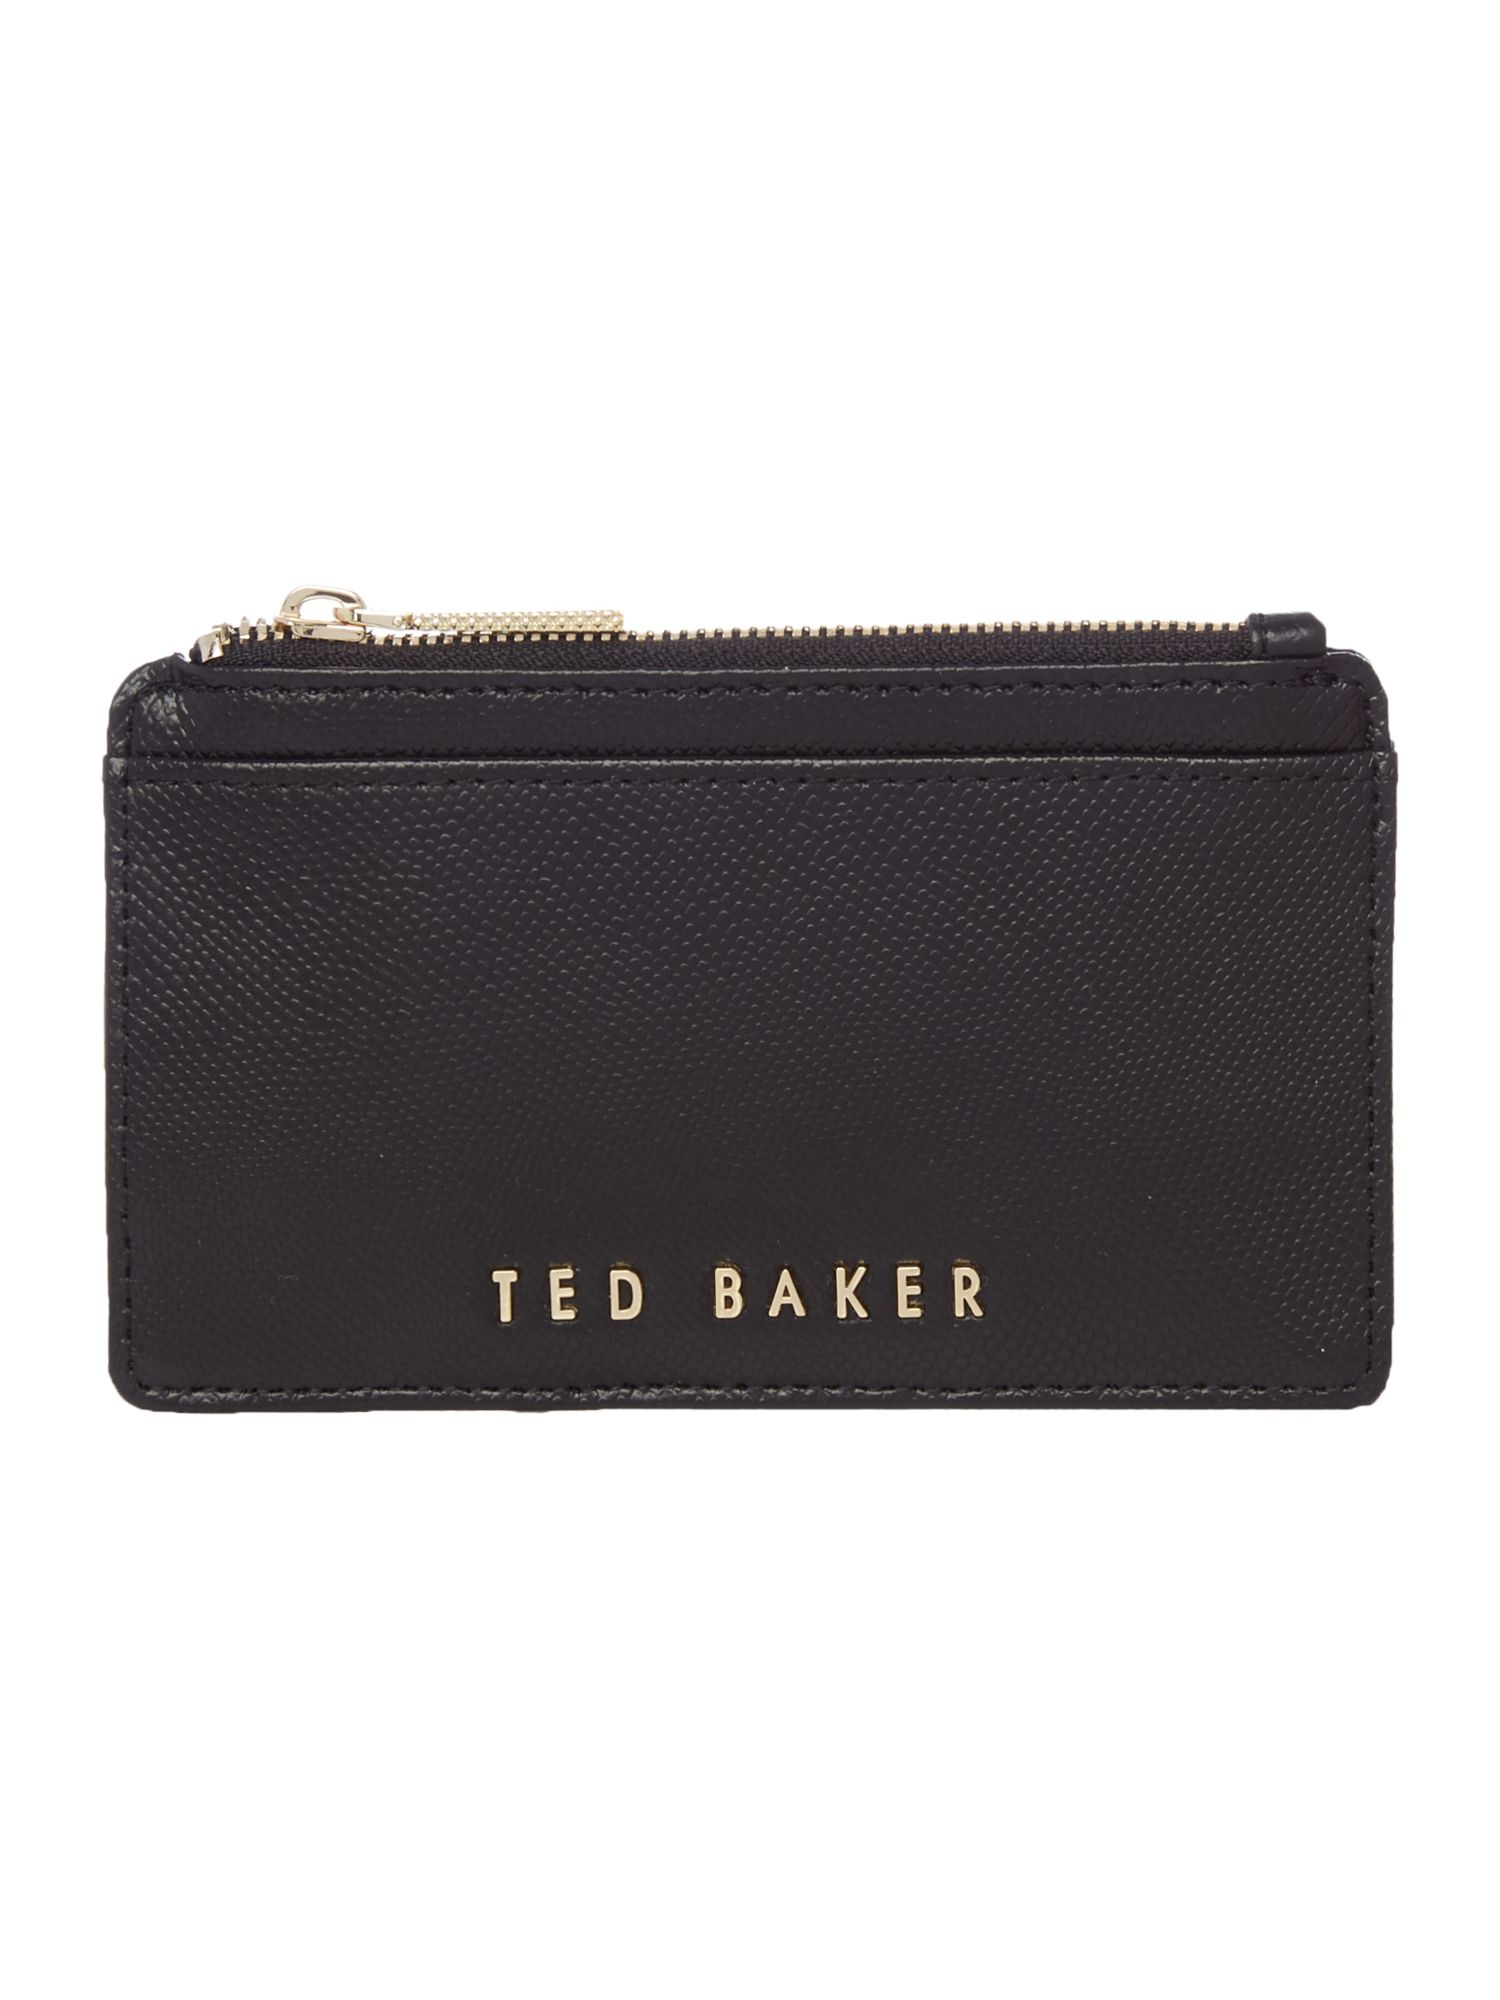 Ted Baker Foley coin purse Black